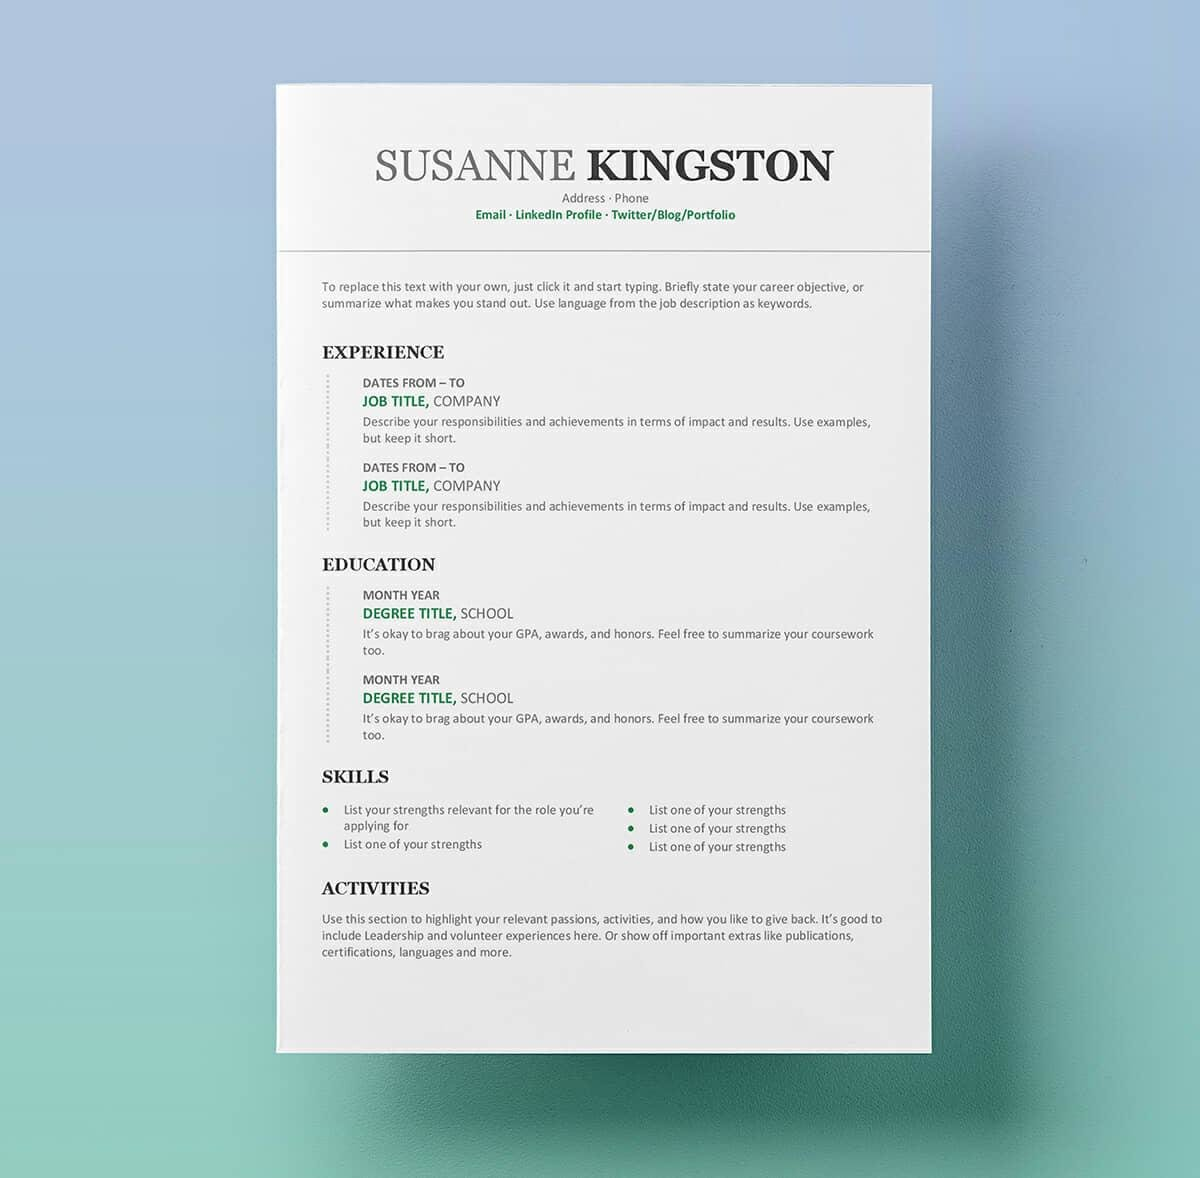 Resume Templates For Word Free 15 Examples For Download Rh Zety Com Where  To Find Resume